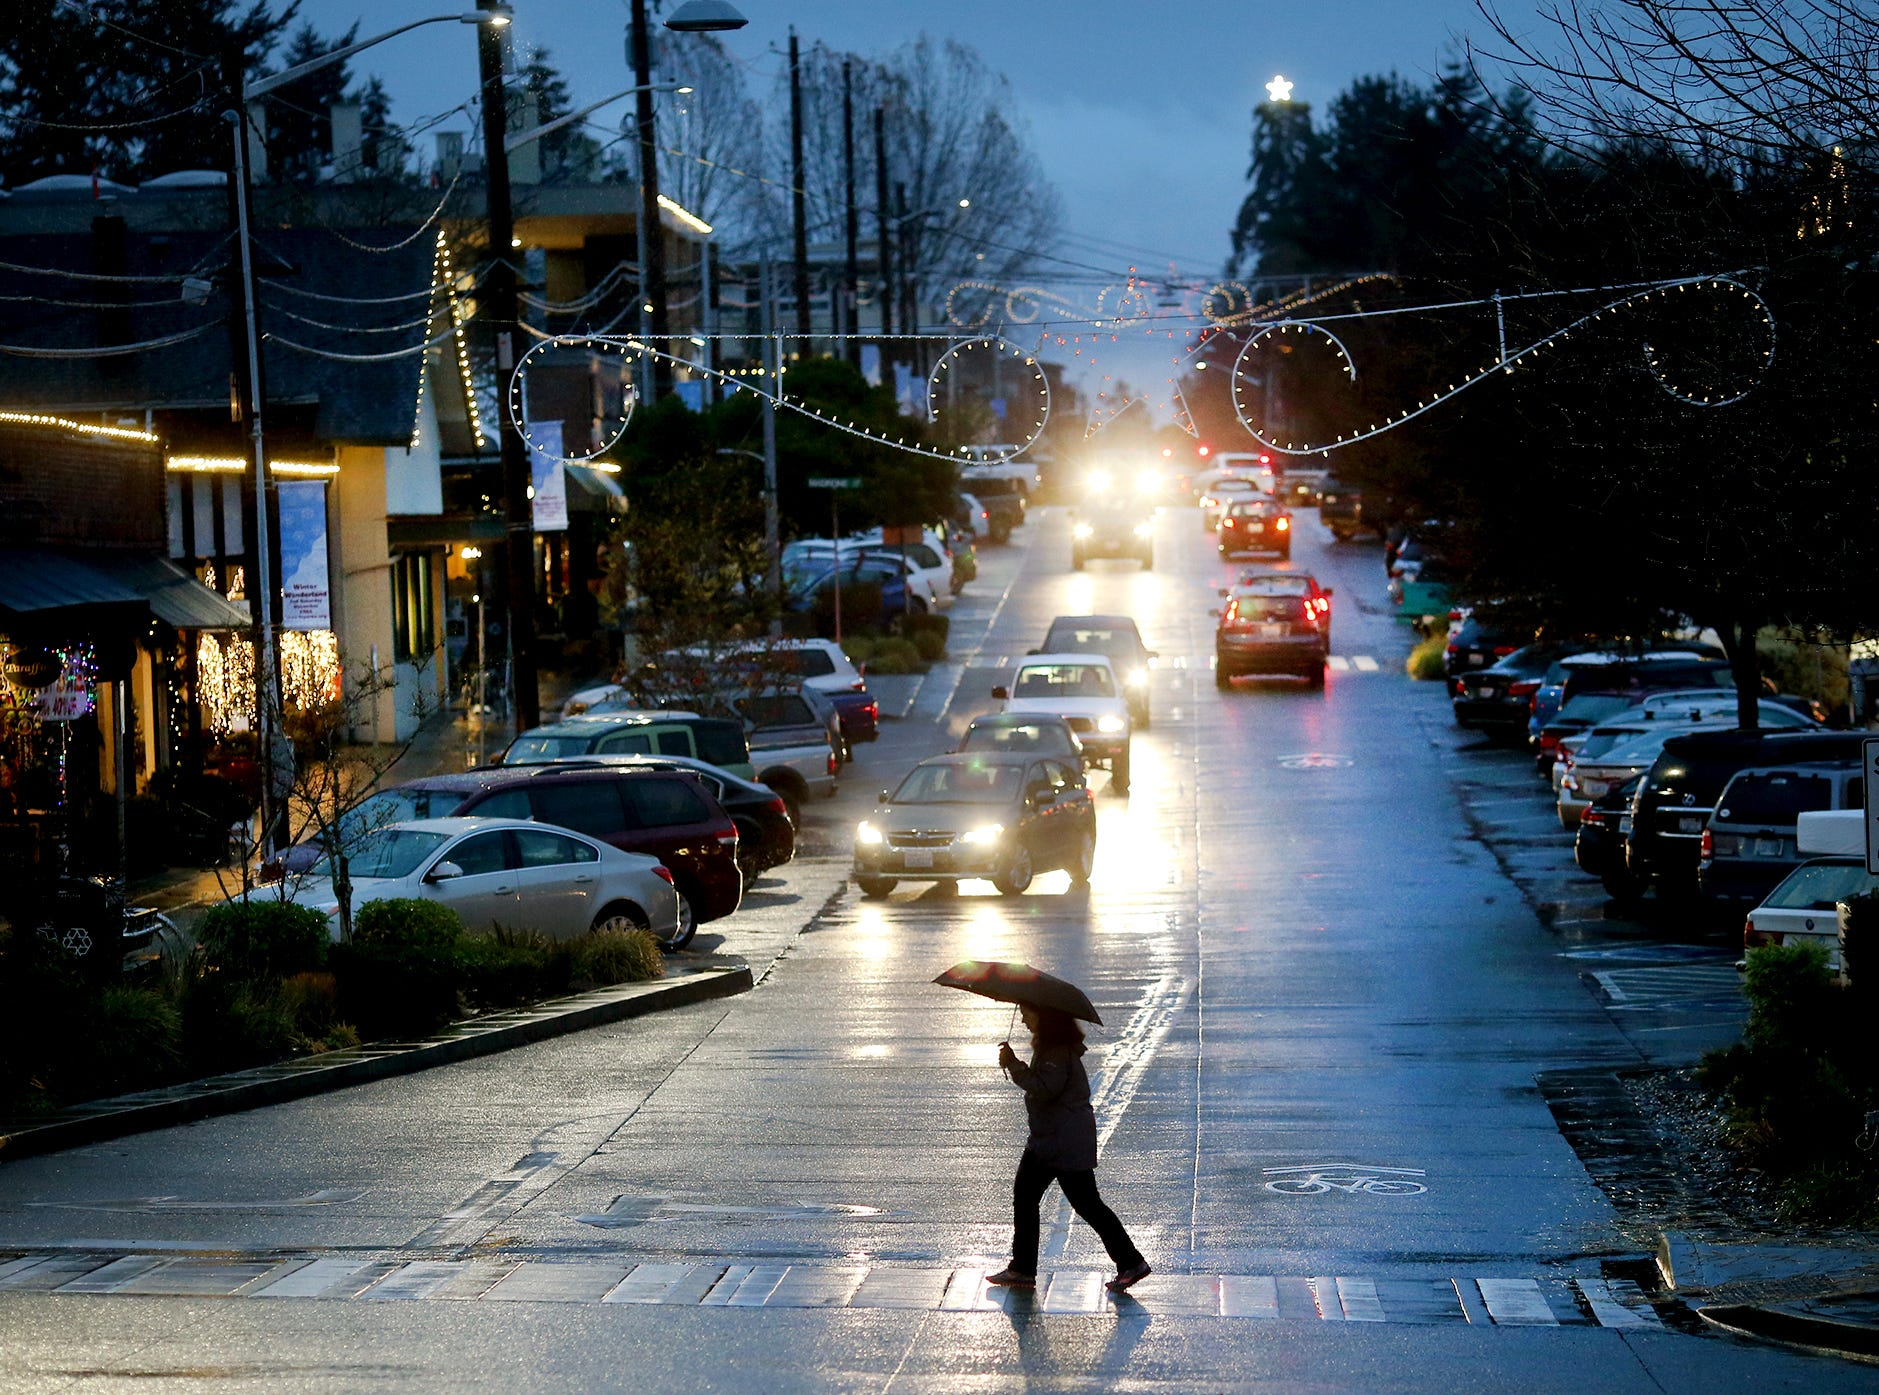 Dark days and rain along Winslow Way and Madison on Bainbridge Island, on Wednesday, November 28, 2018.